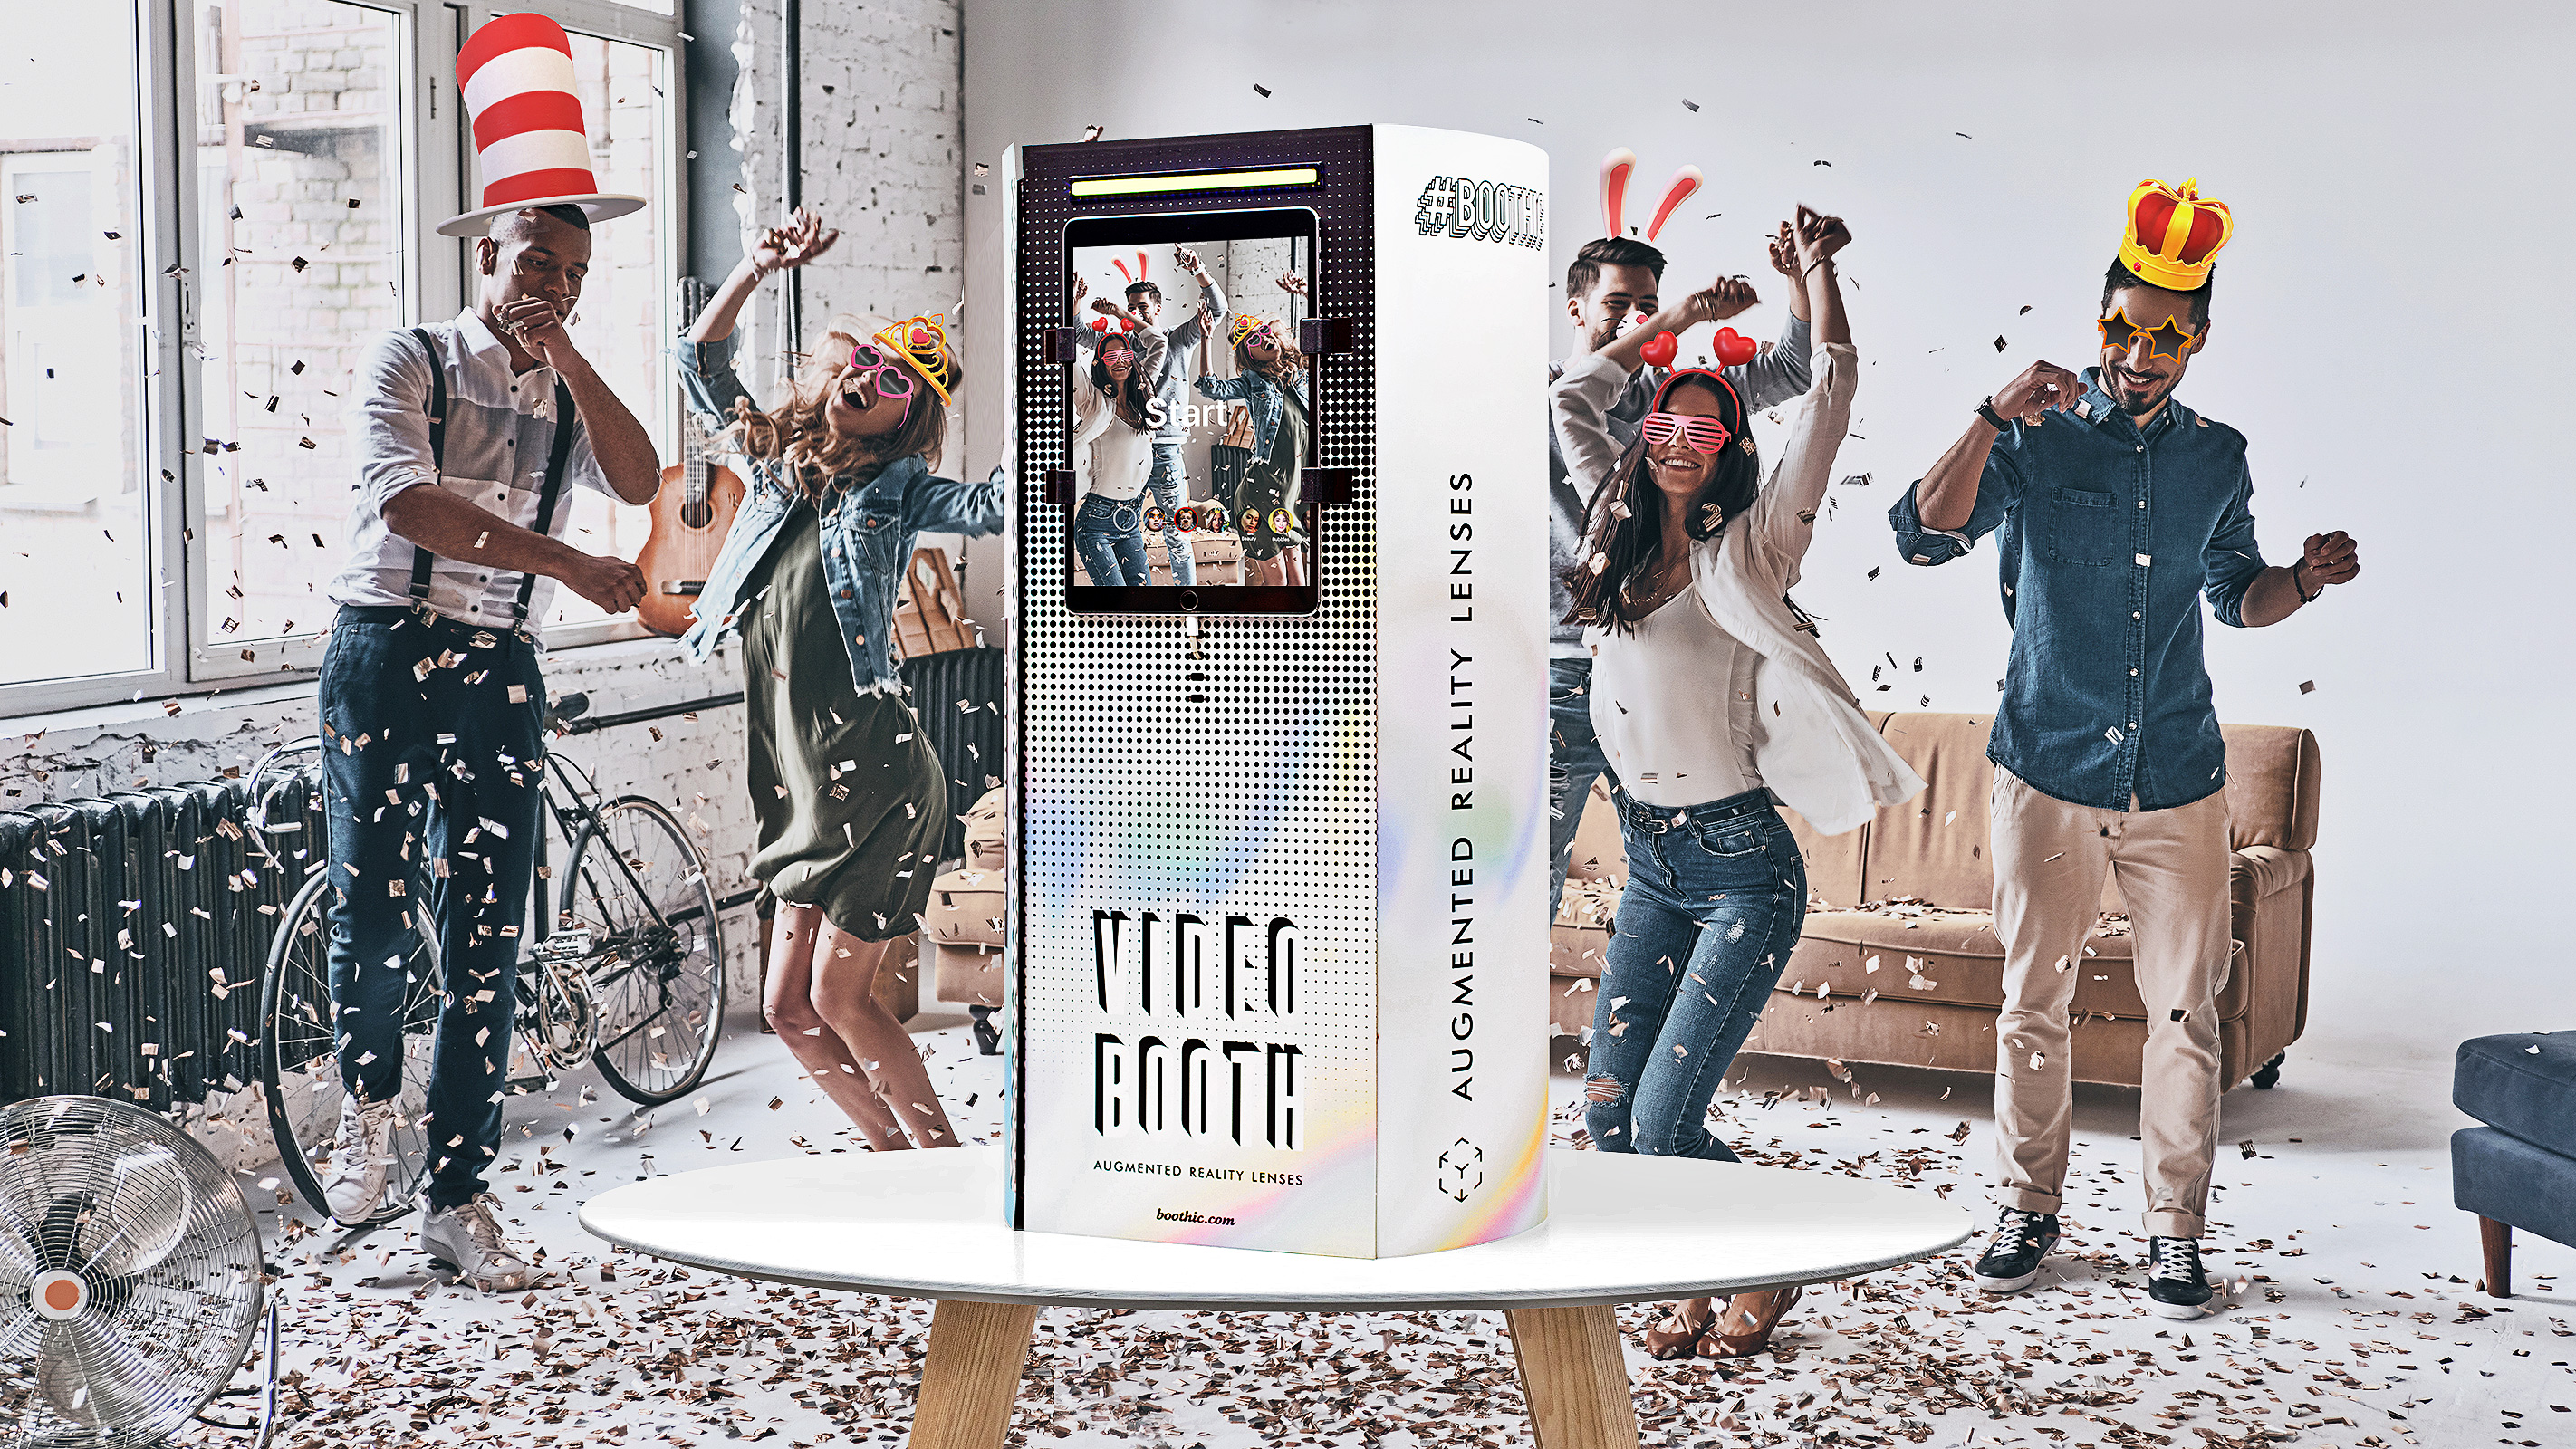 Boothic Photo Booth Kit 🔥 The party gadget 🔥 Do-It-Yourself Video Booth Kit